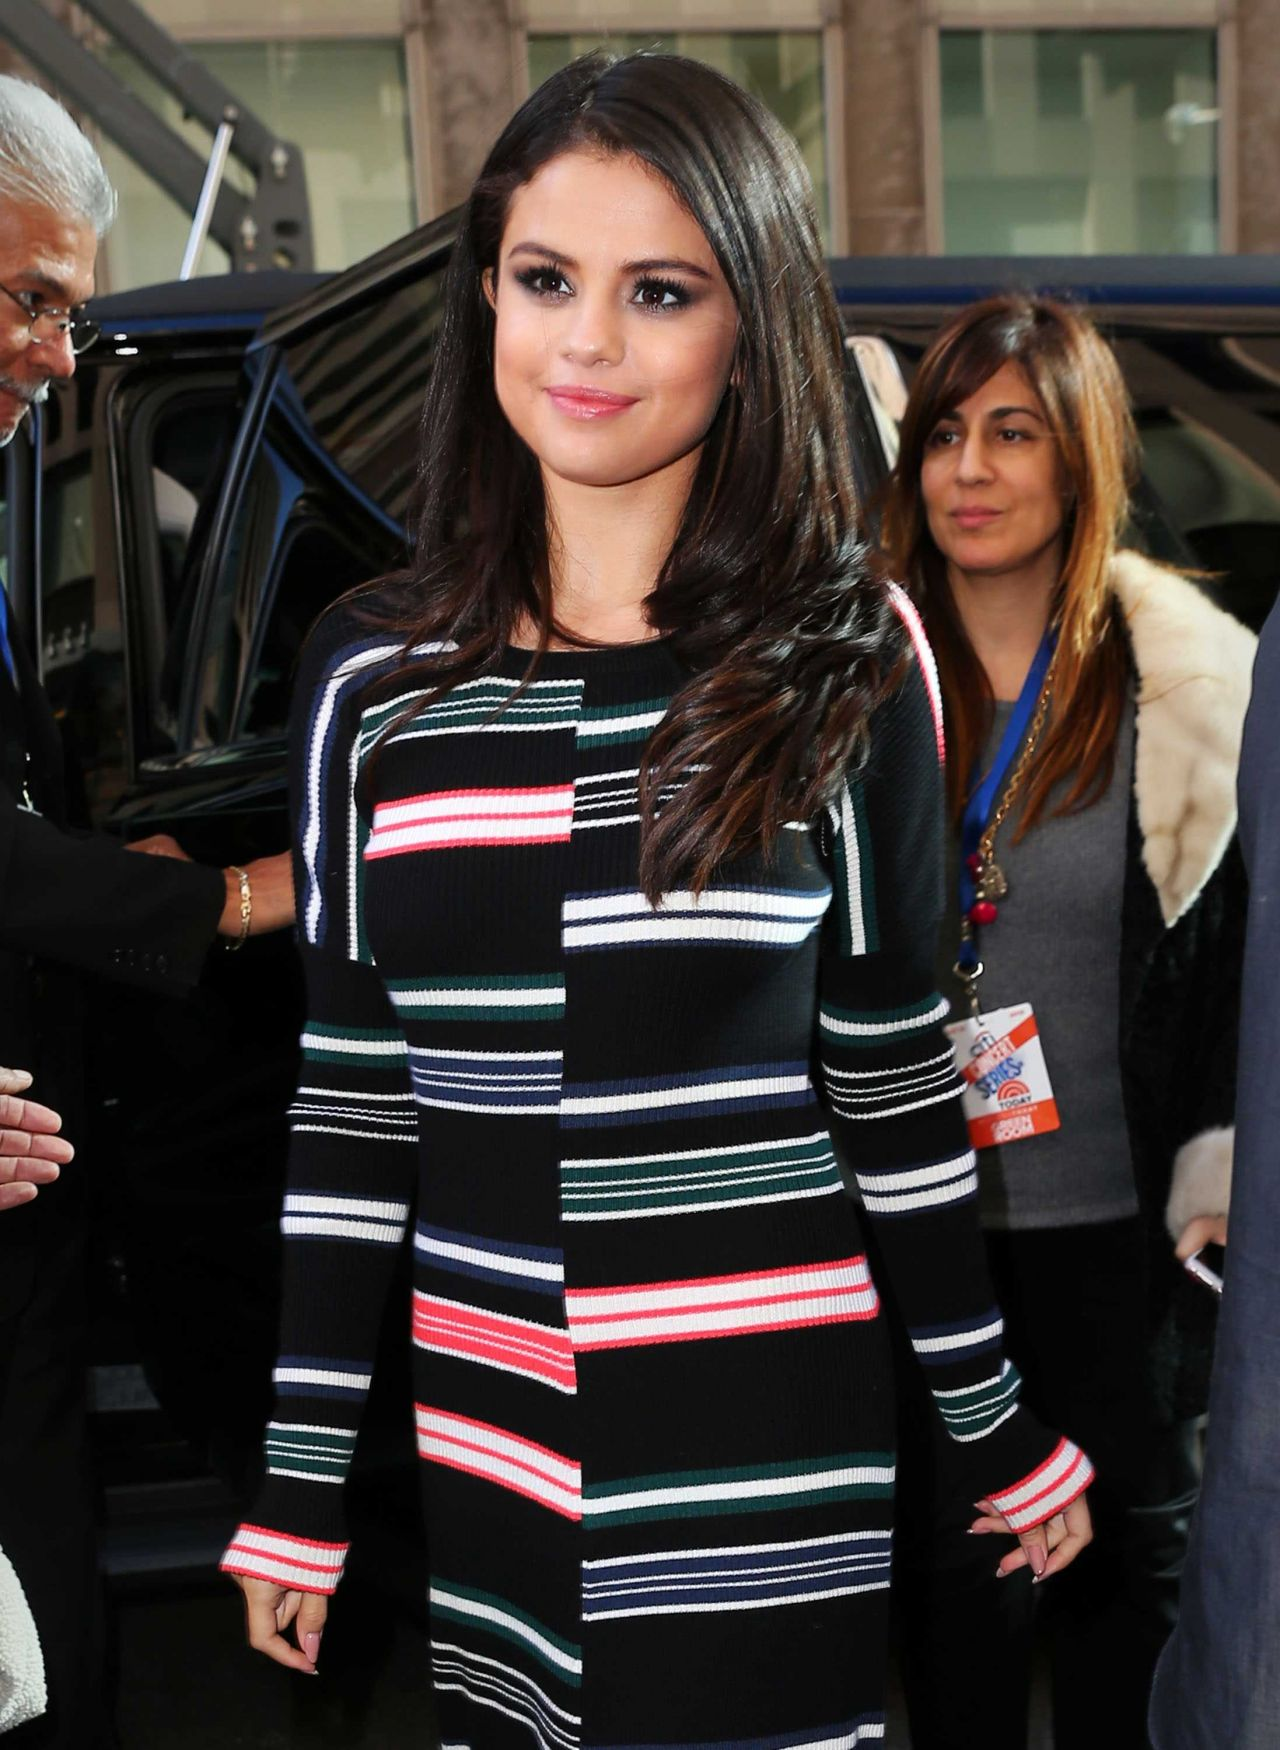 selena-gomez-at-siriusxm-studios-in-new-york-city-october-2015_13